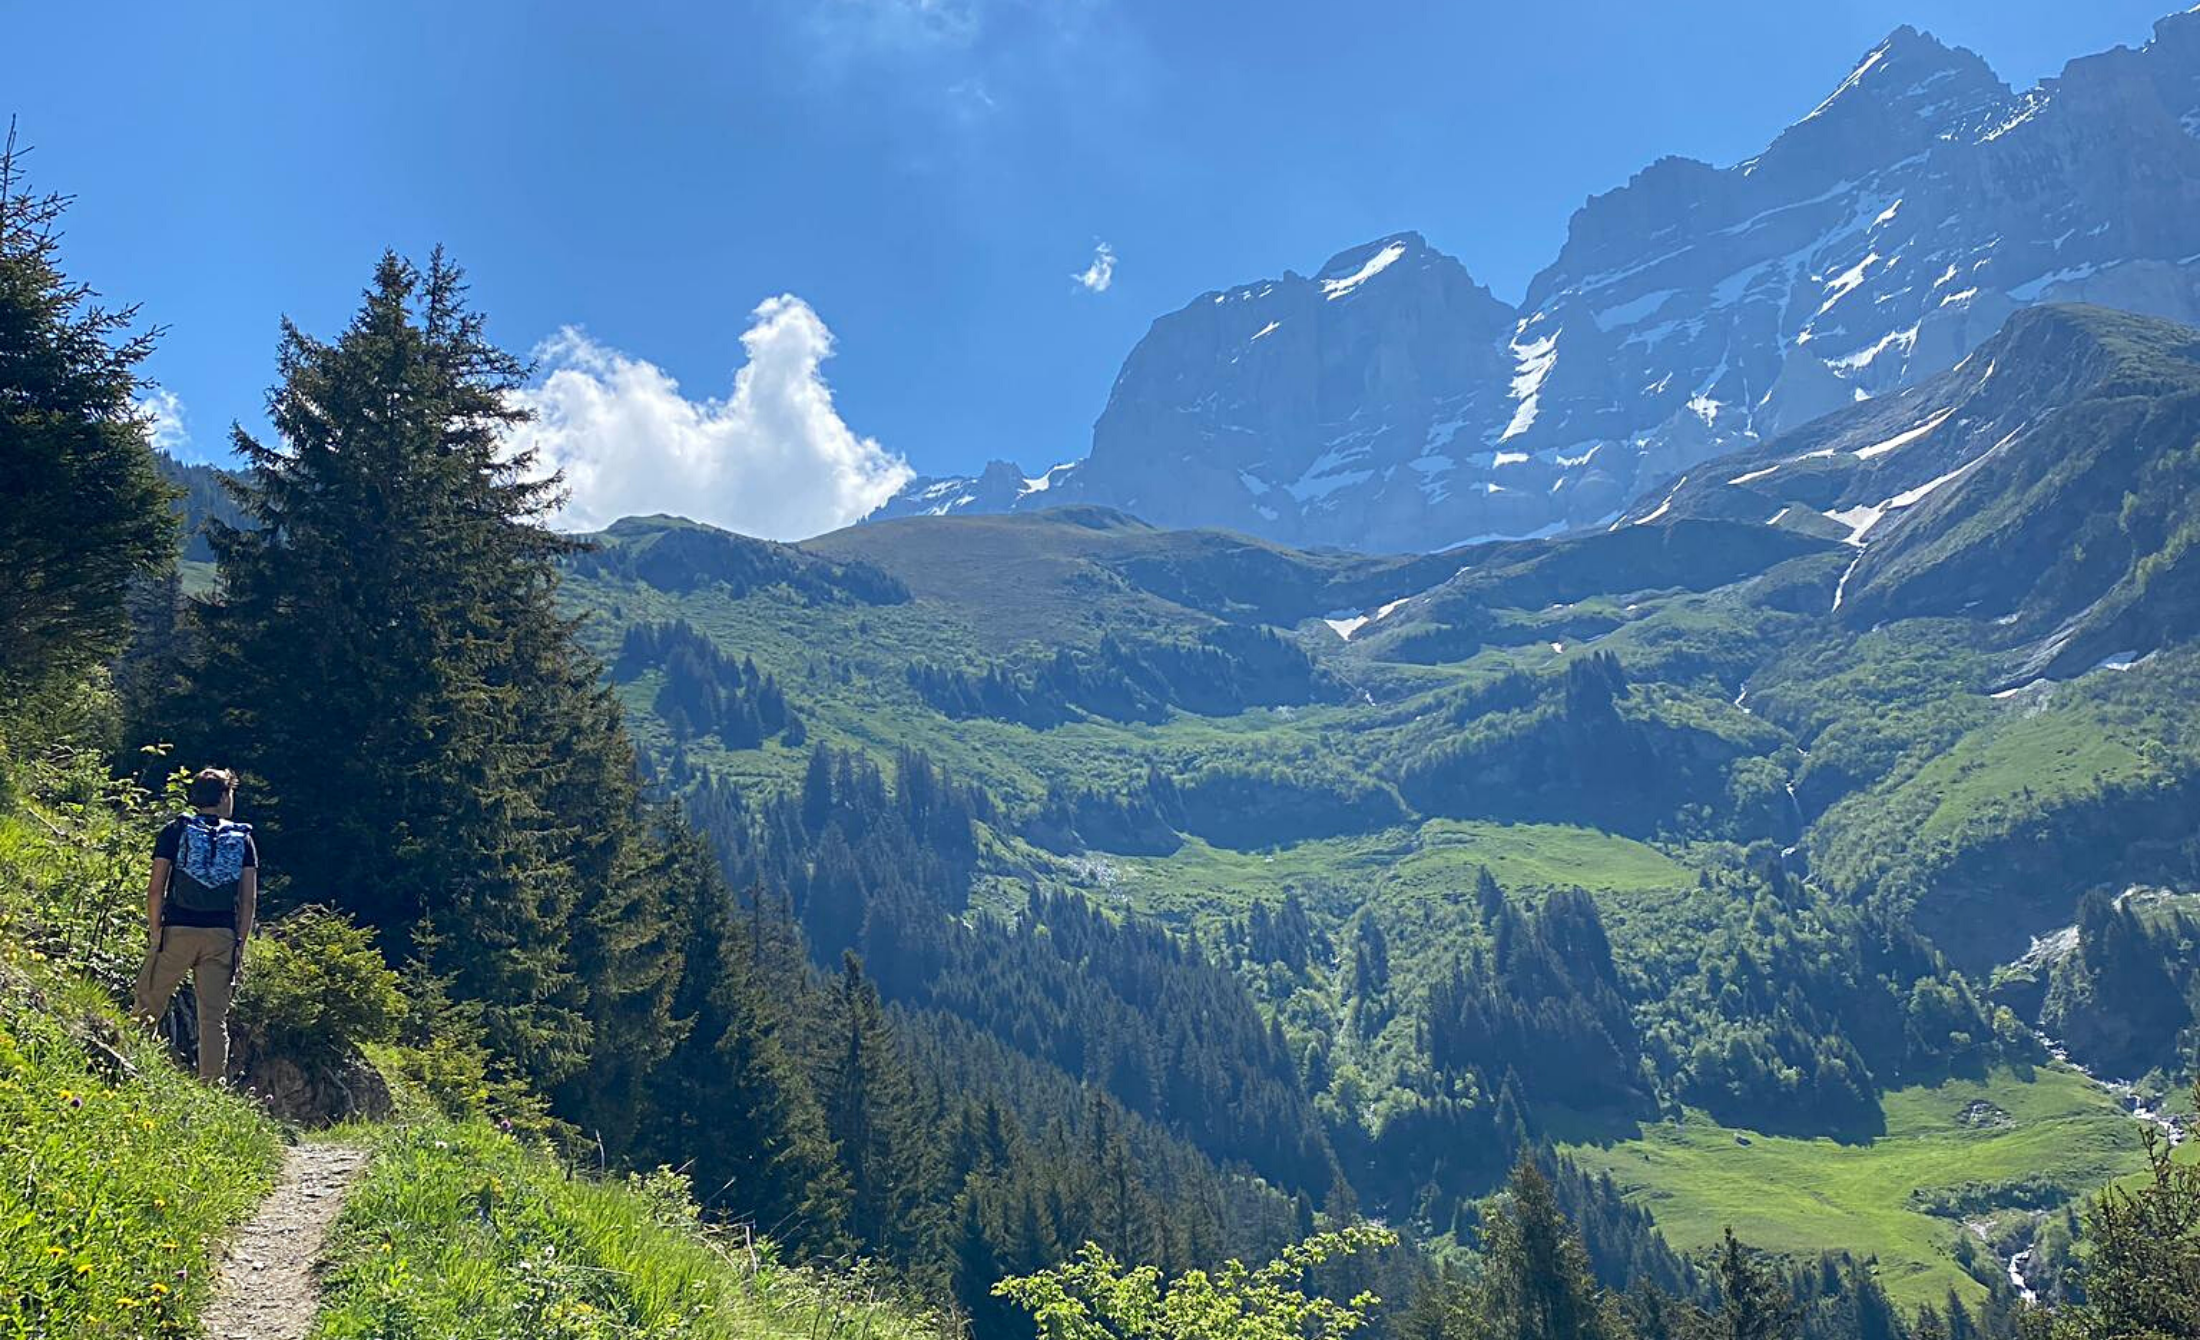 LOOKING FOR SWISS WEEKEND INSPIRATION?